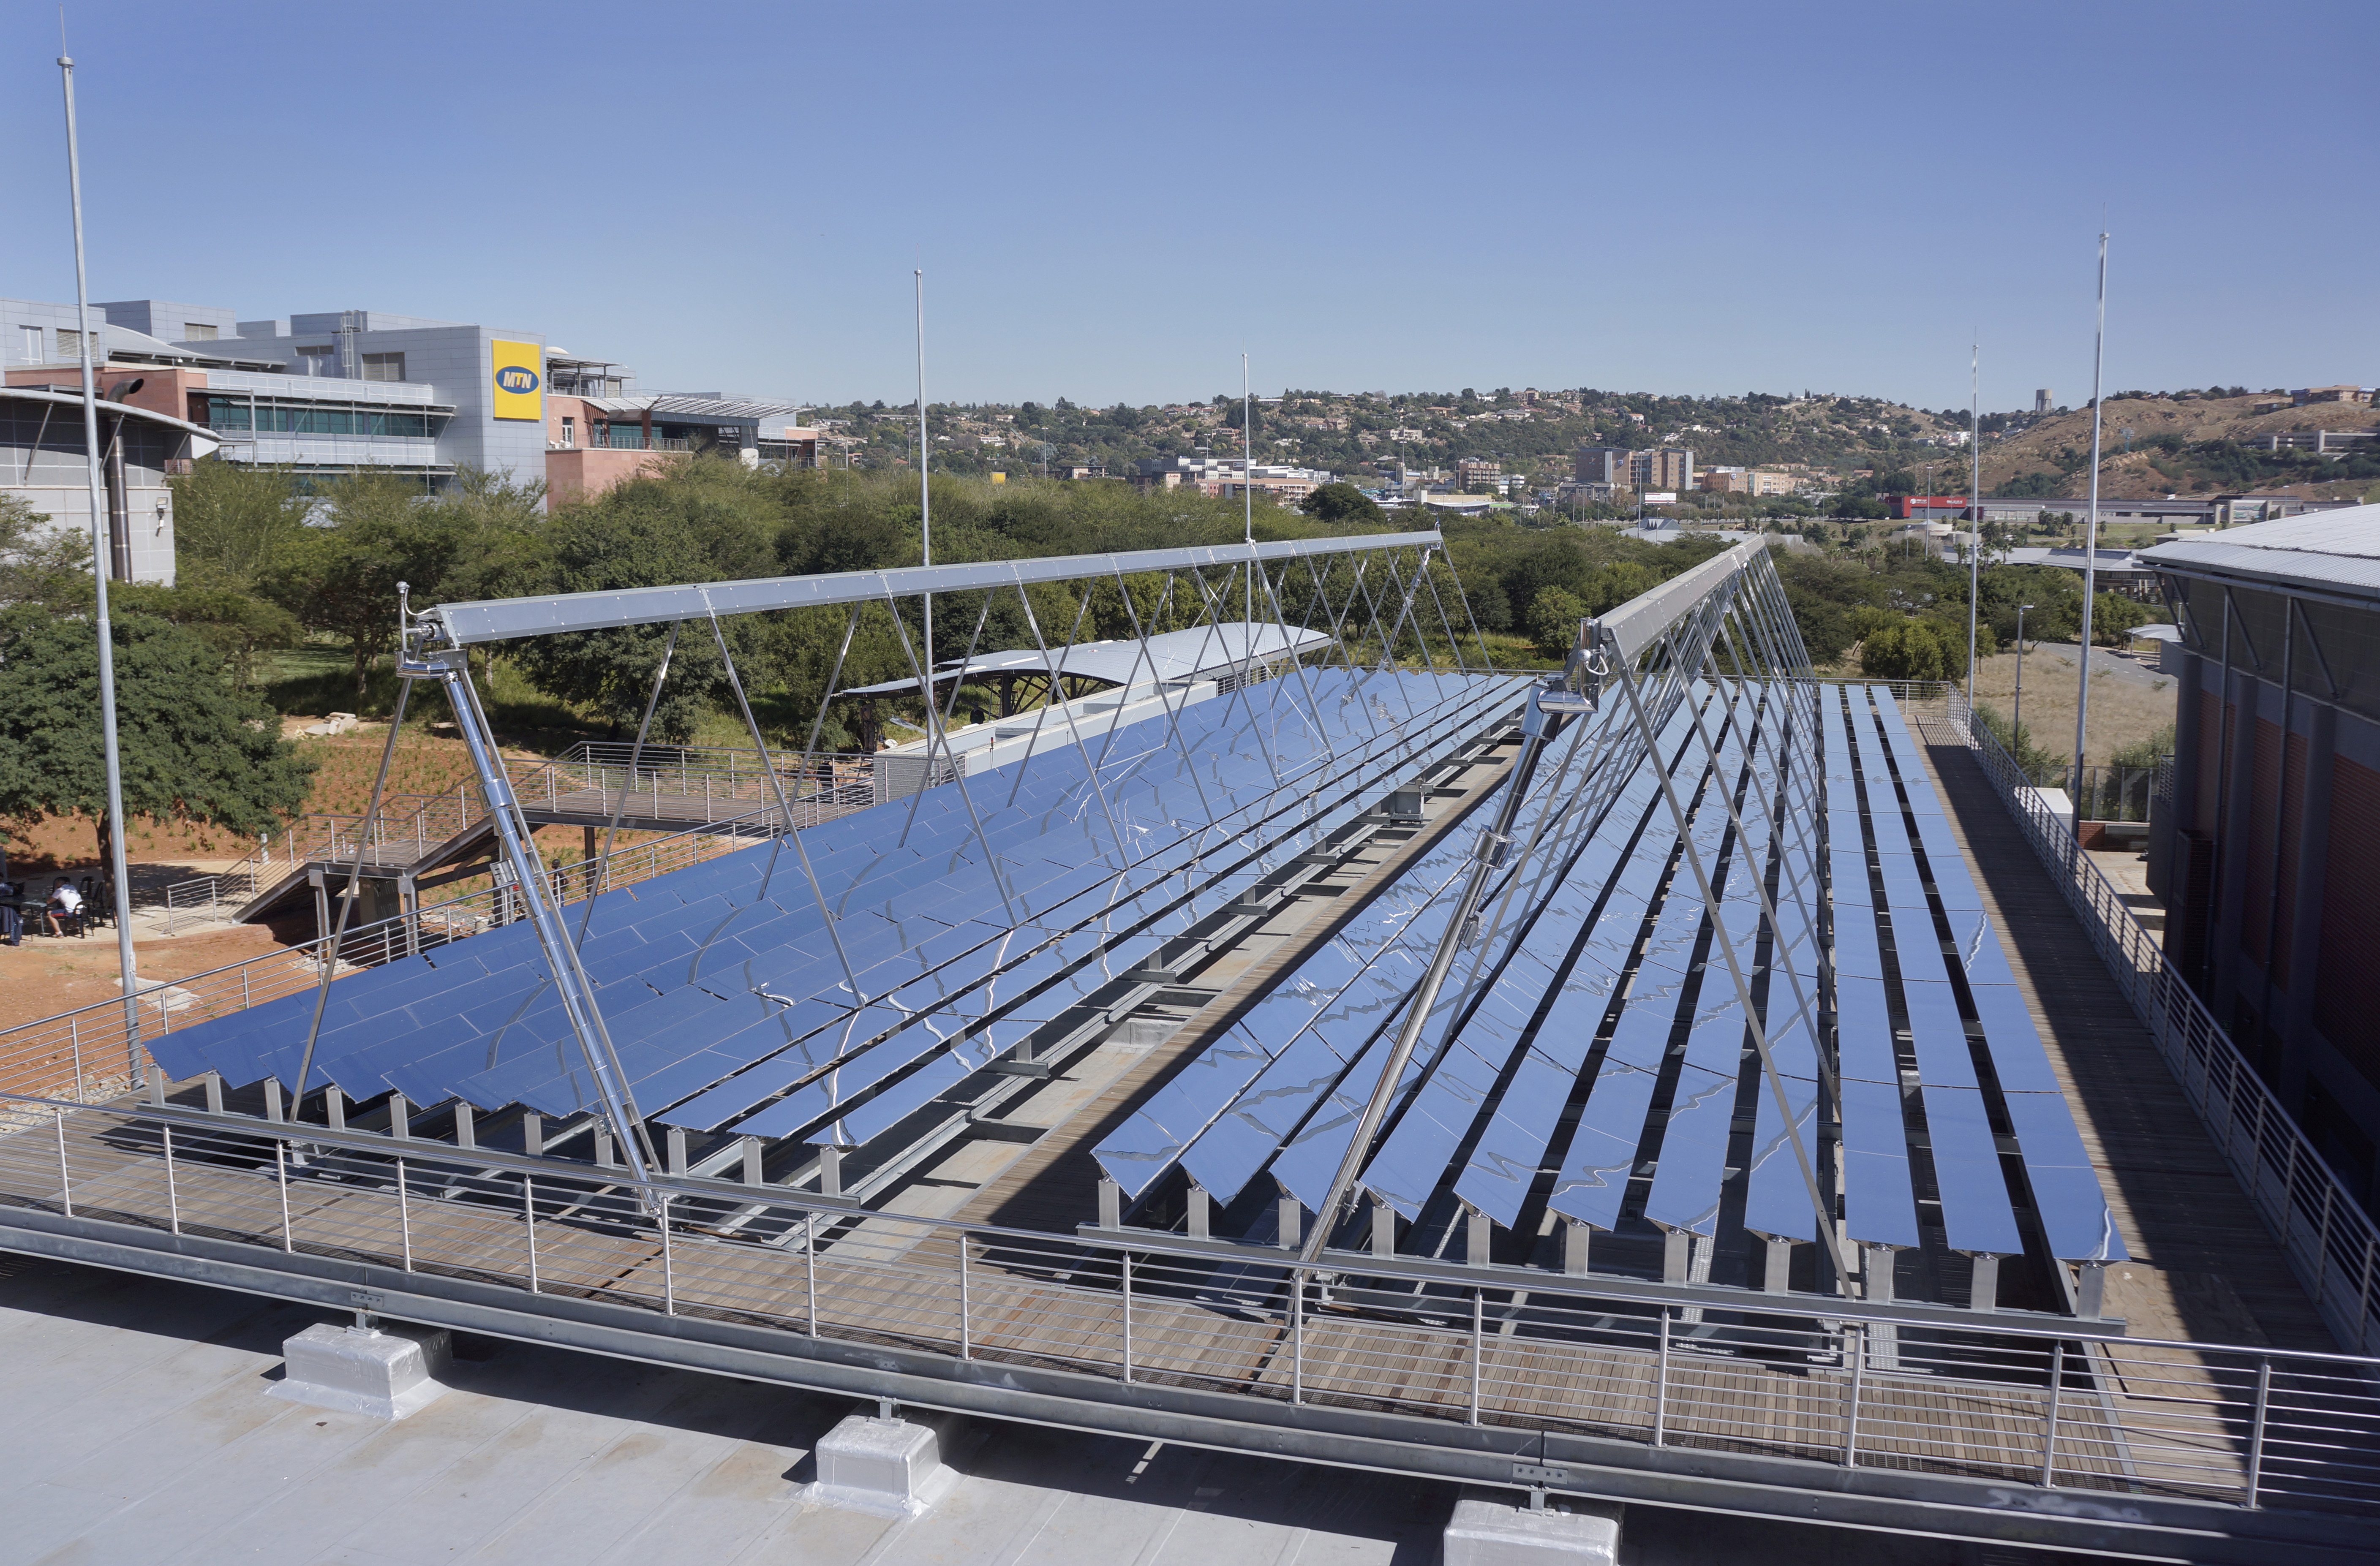 dena Solar Roof Programme First concentrated solar thermal